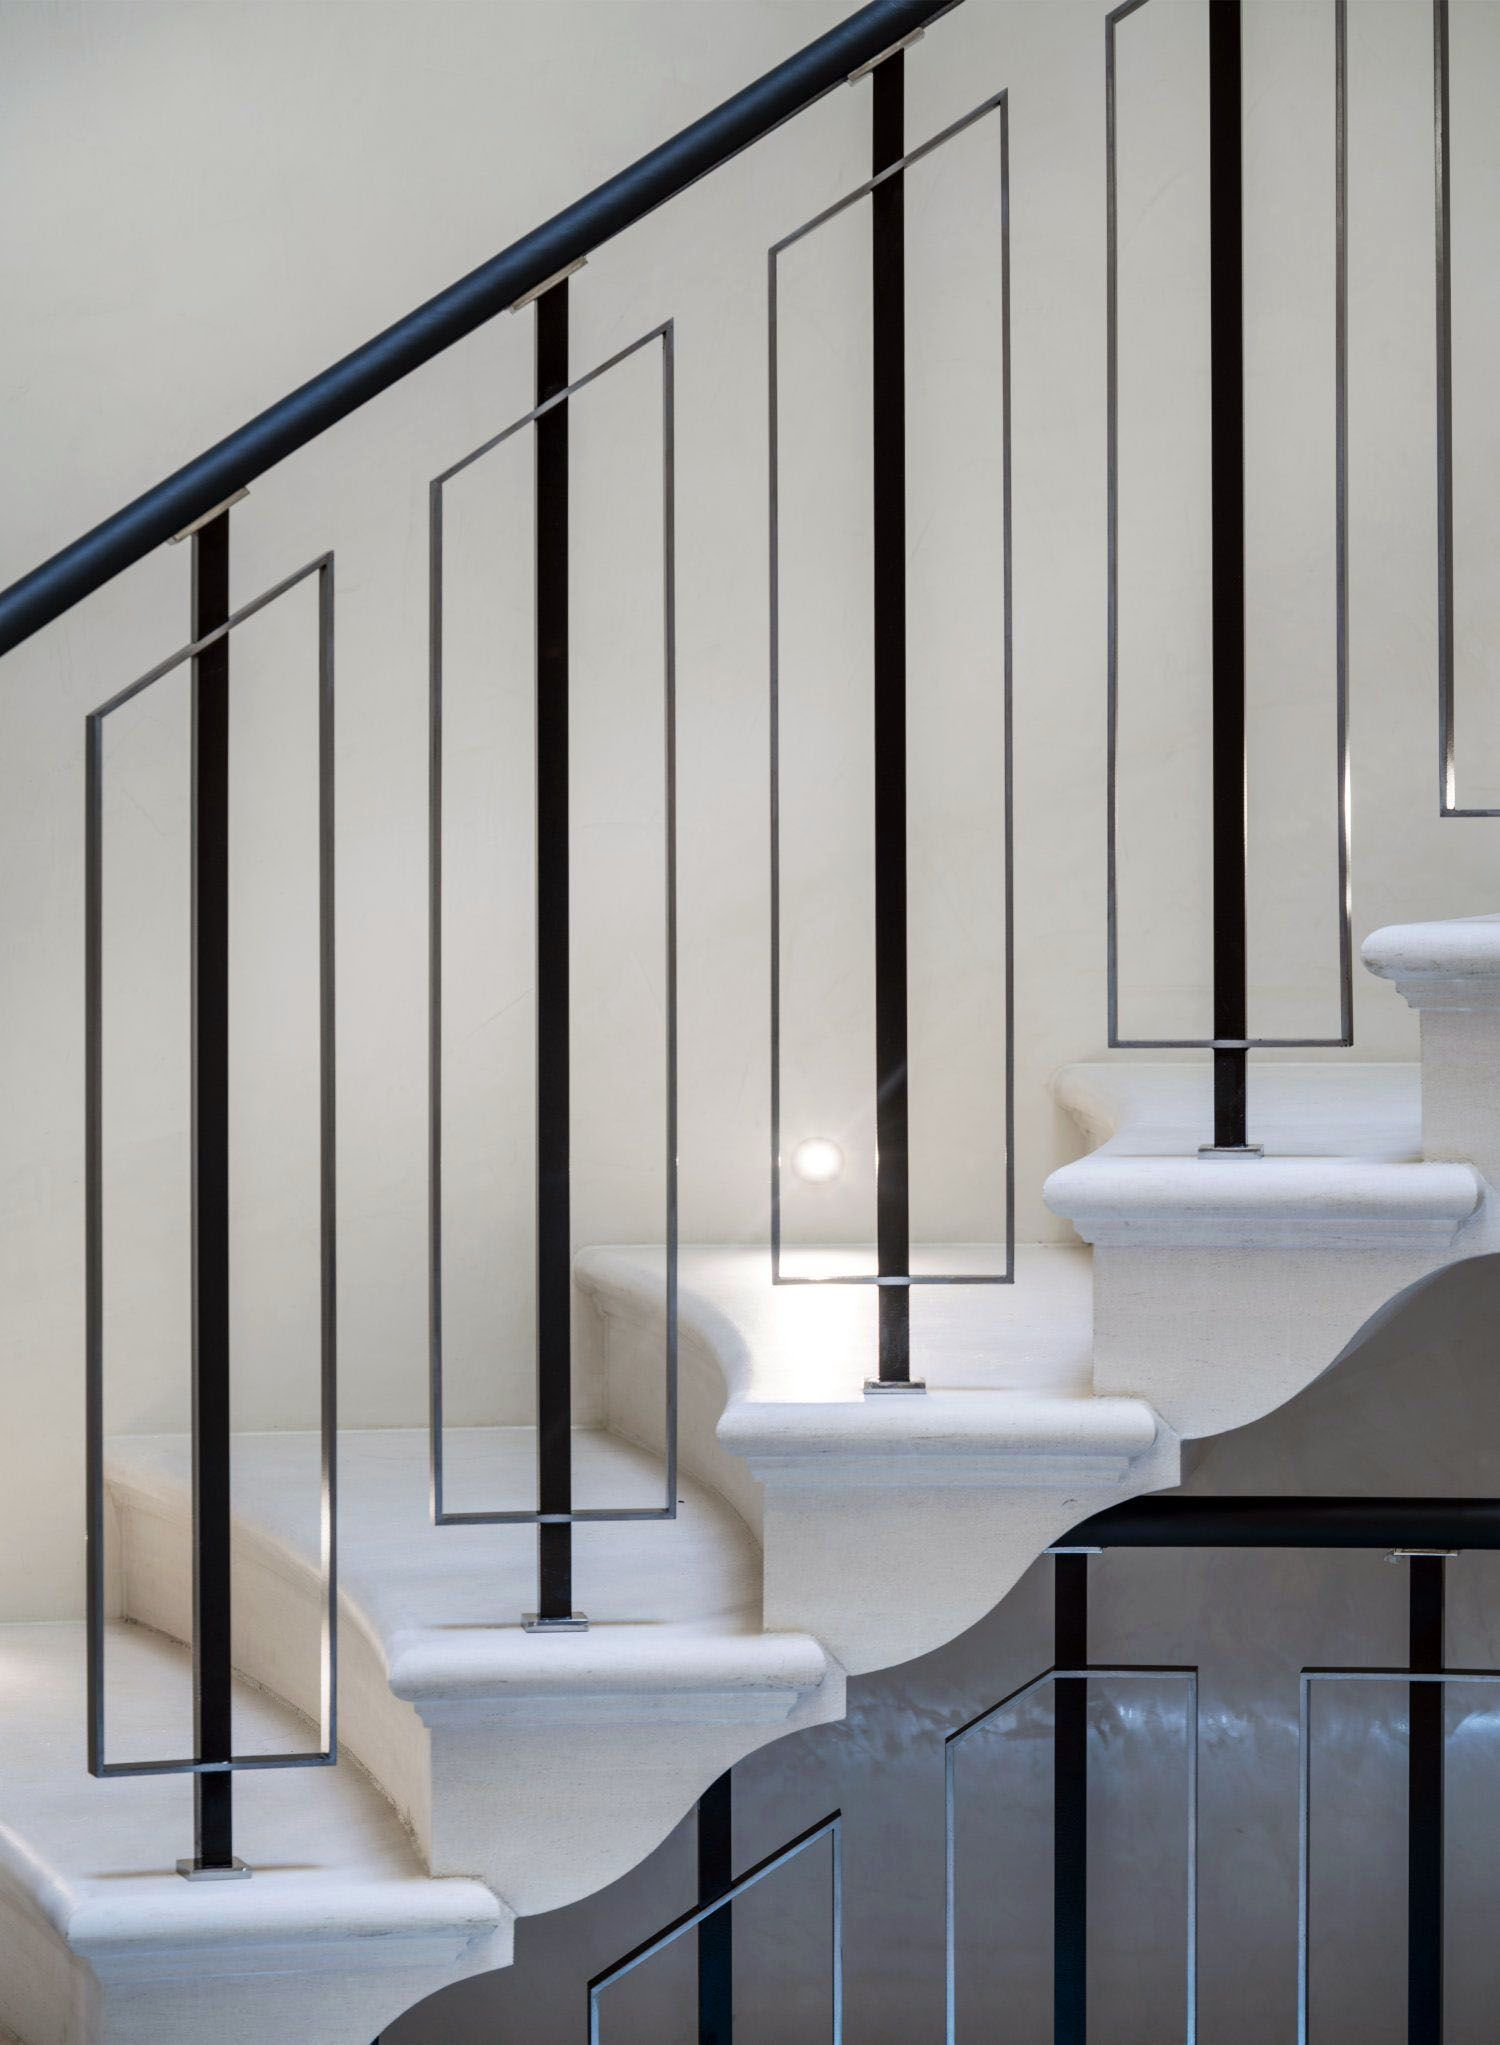 Adorable Amazing Stairs Idea Staircase Railing Design Home Stairs Design Interior Stair Railing